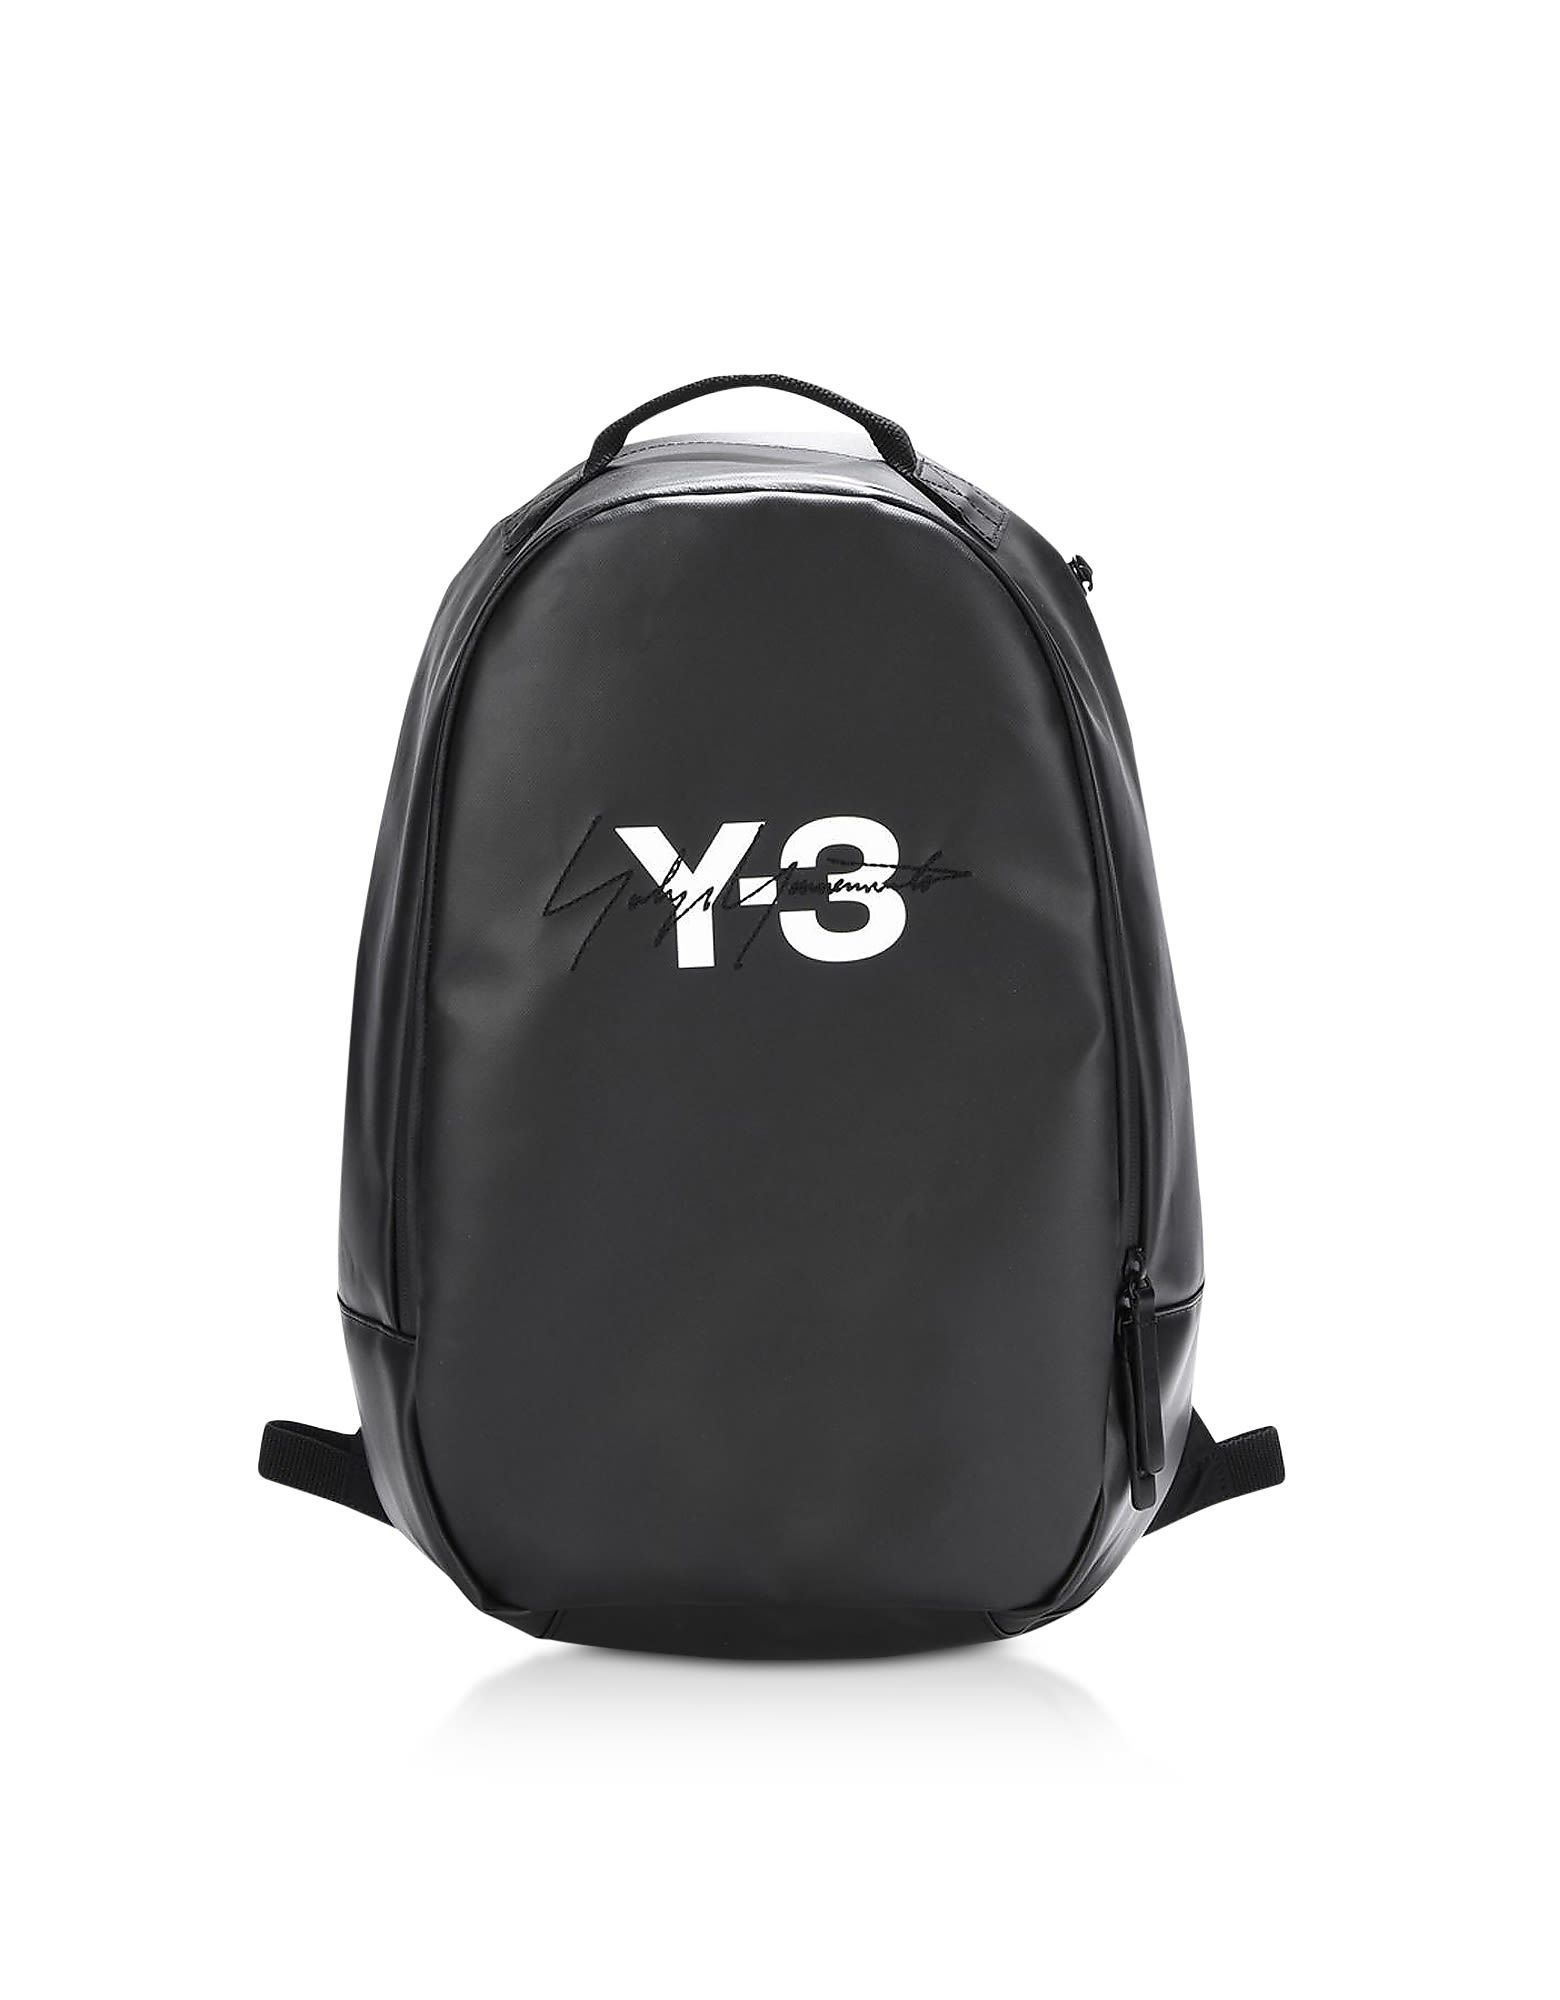 a94e941b6b Y-3 BLACK COATED CANVAS SIGNATURE BACKPACK.  y-3  bags  lining  canvas   backpacks  cotton